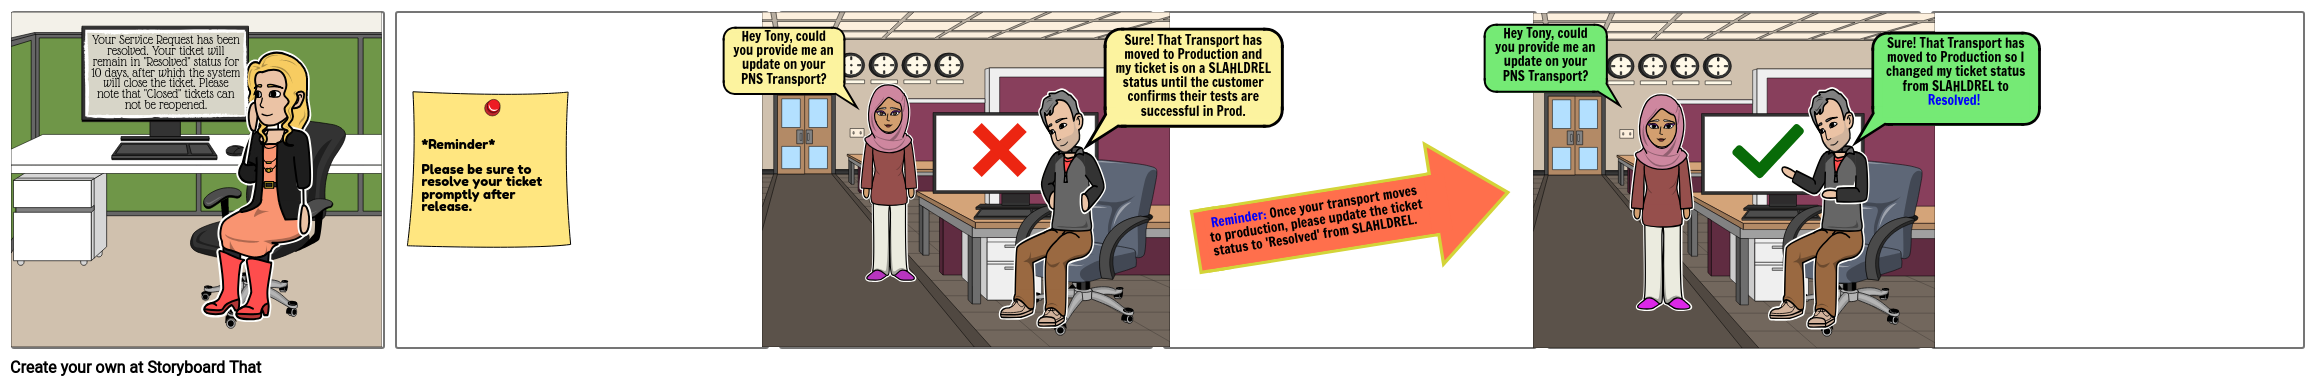 Transport Tickets - SLAHLDREL to Resolved